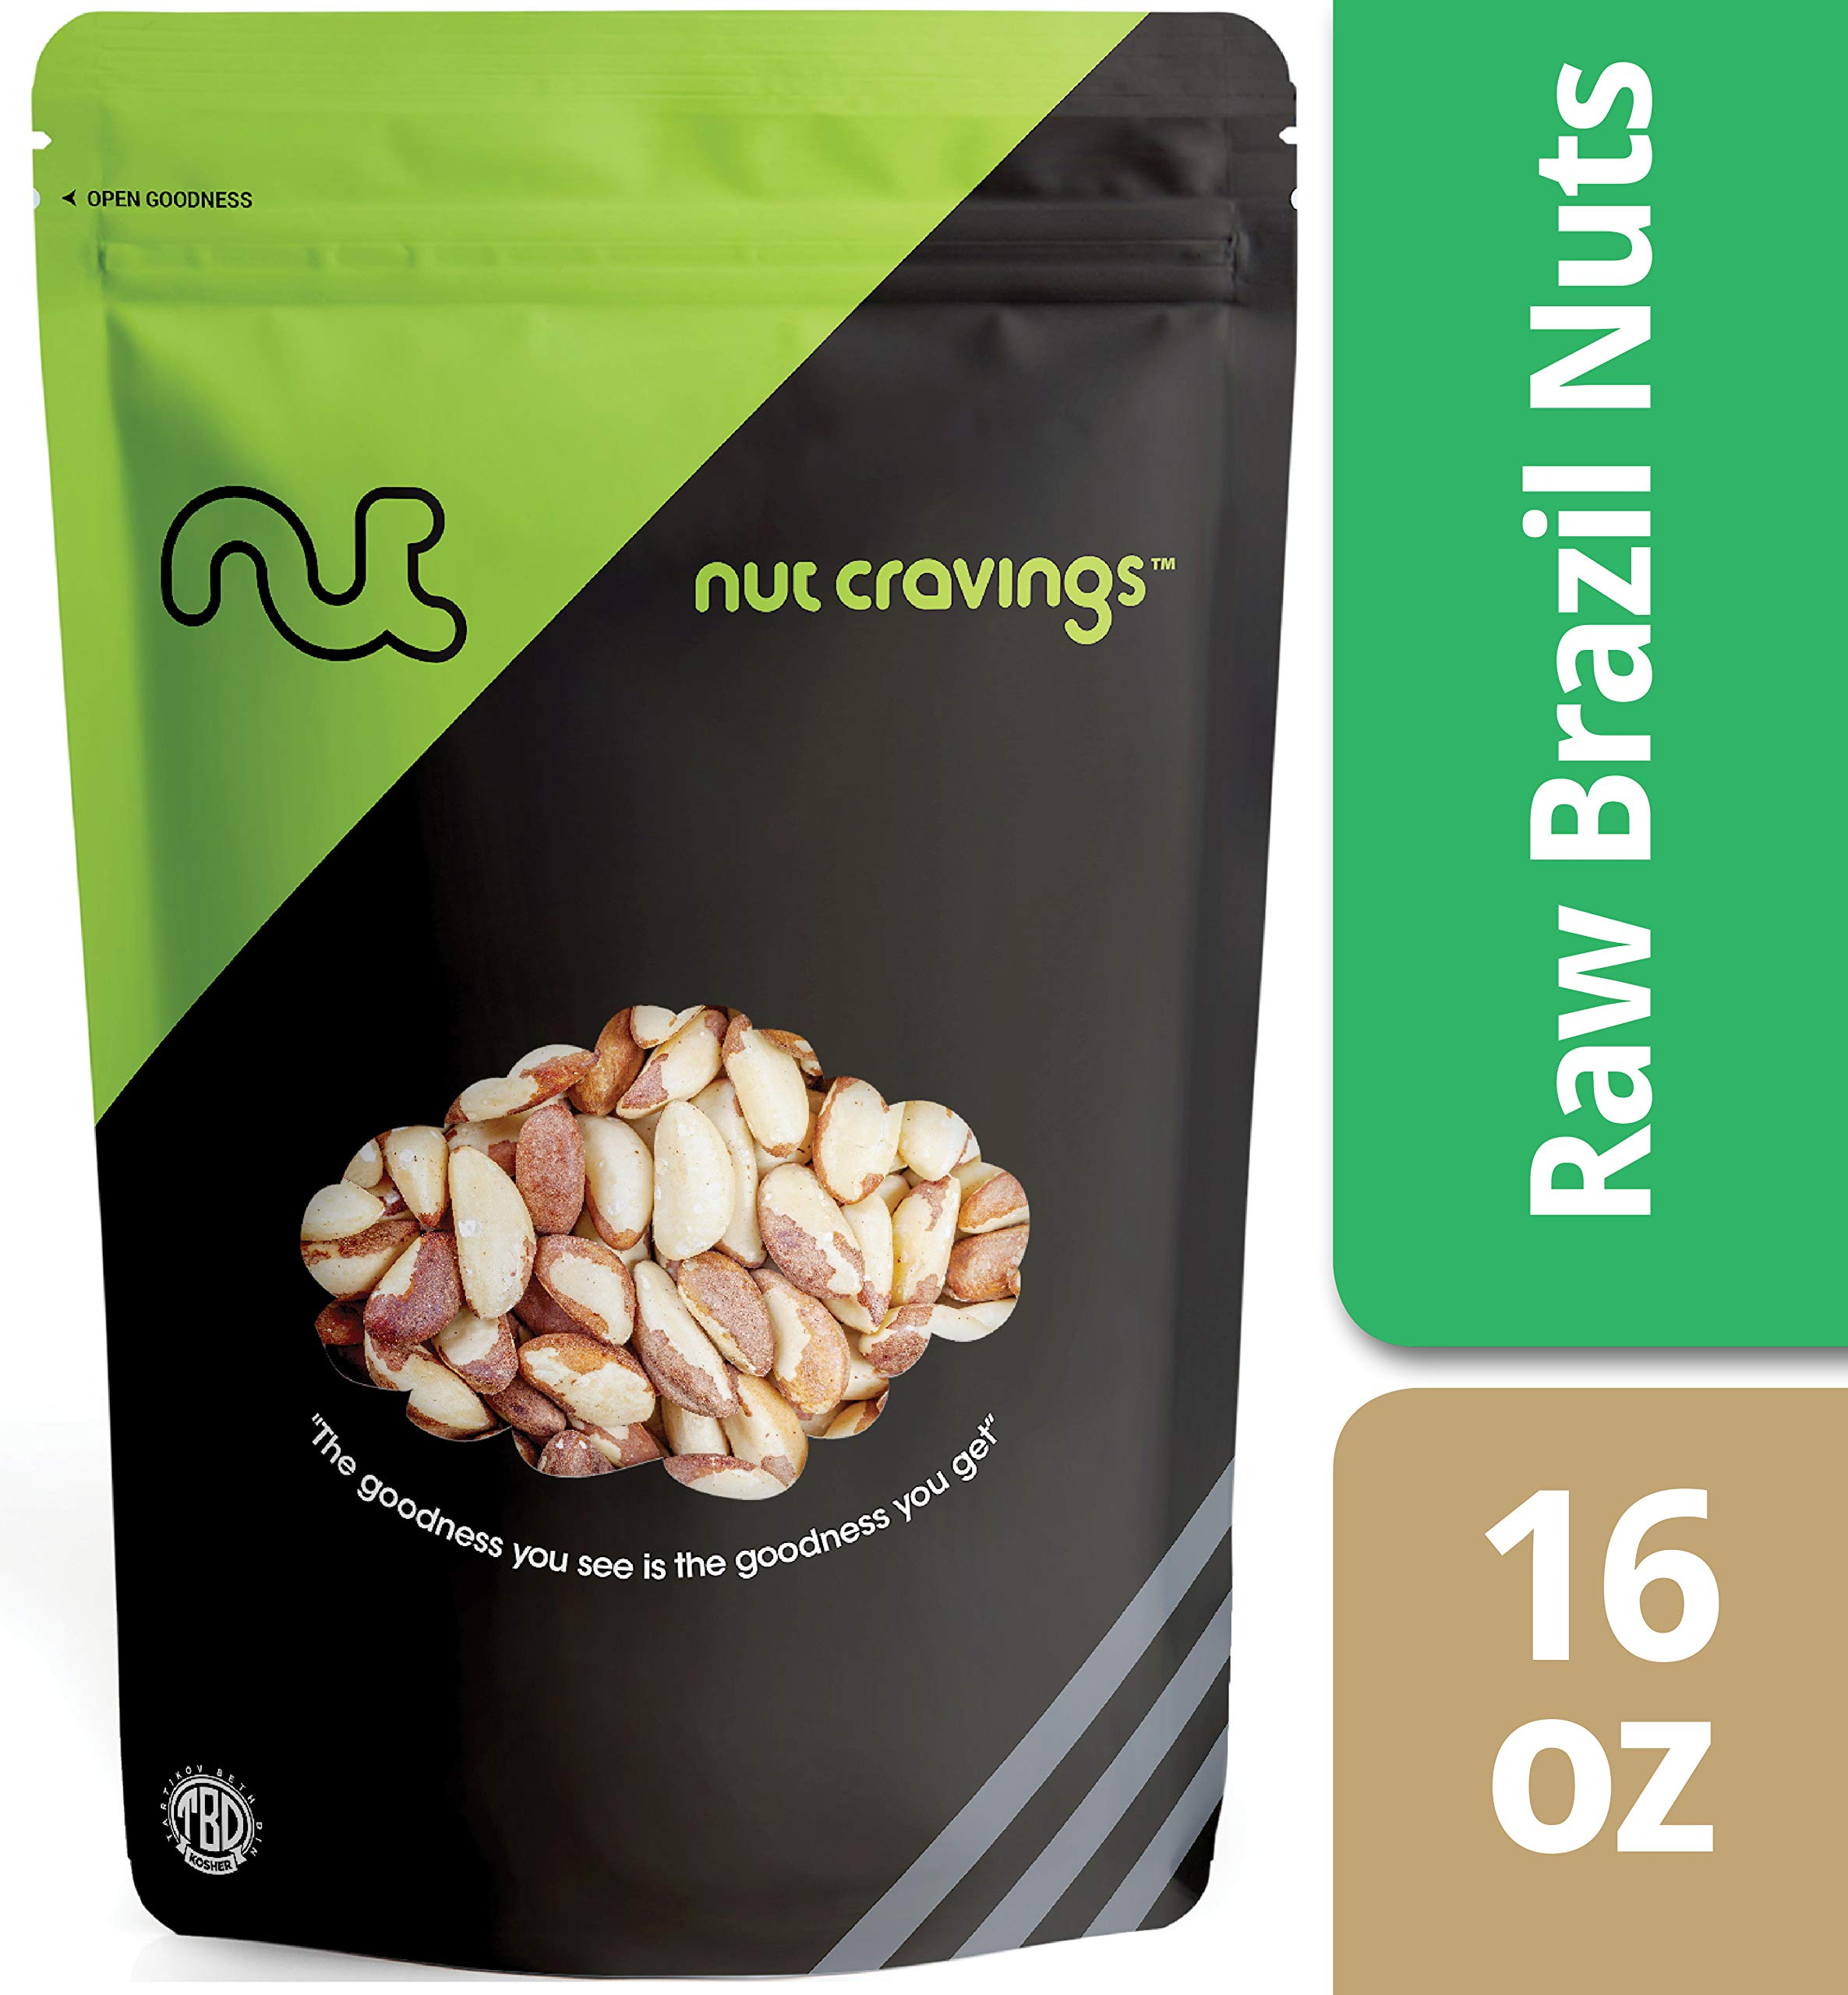 Nut Cravings Raw Brazil Nuts (1 Pound) – Whole, Compare To Organic, Unsalted, No Shell Brazilian Nuts – 16 Ounce by Nut Cravings (Image #1)